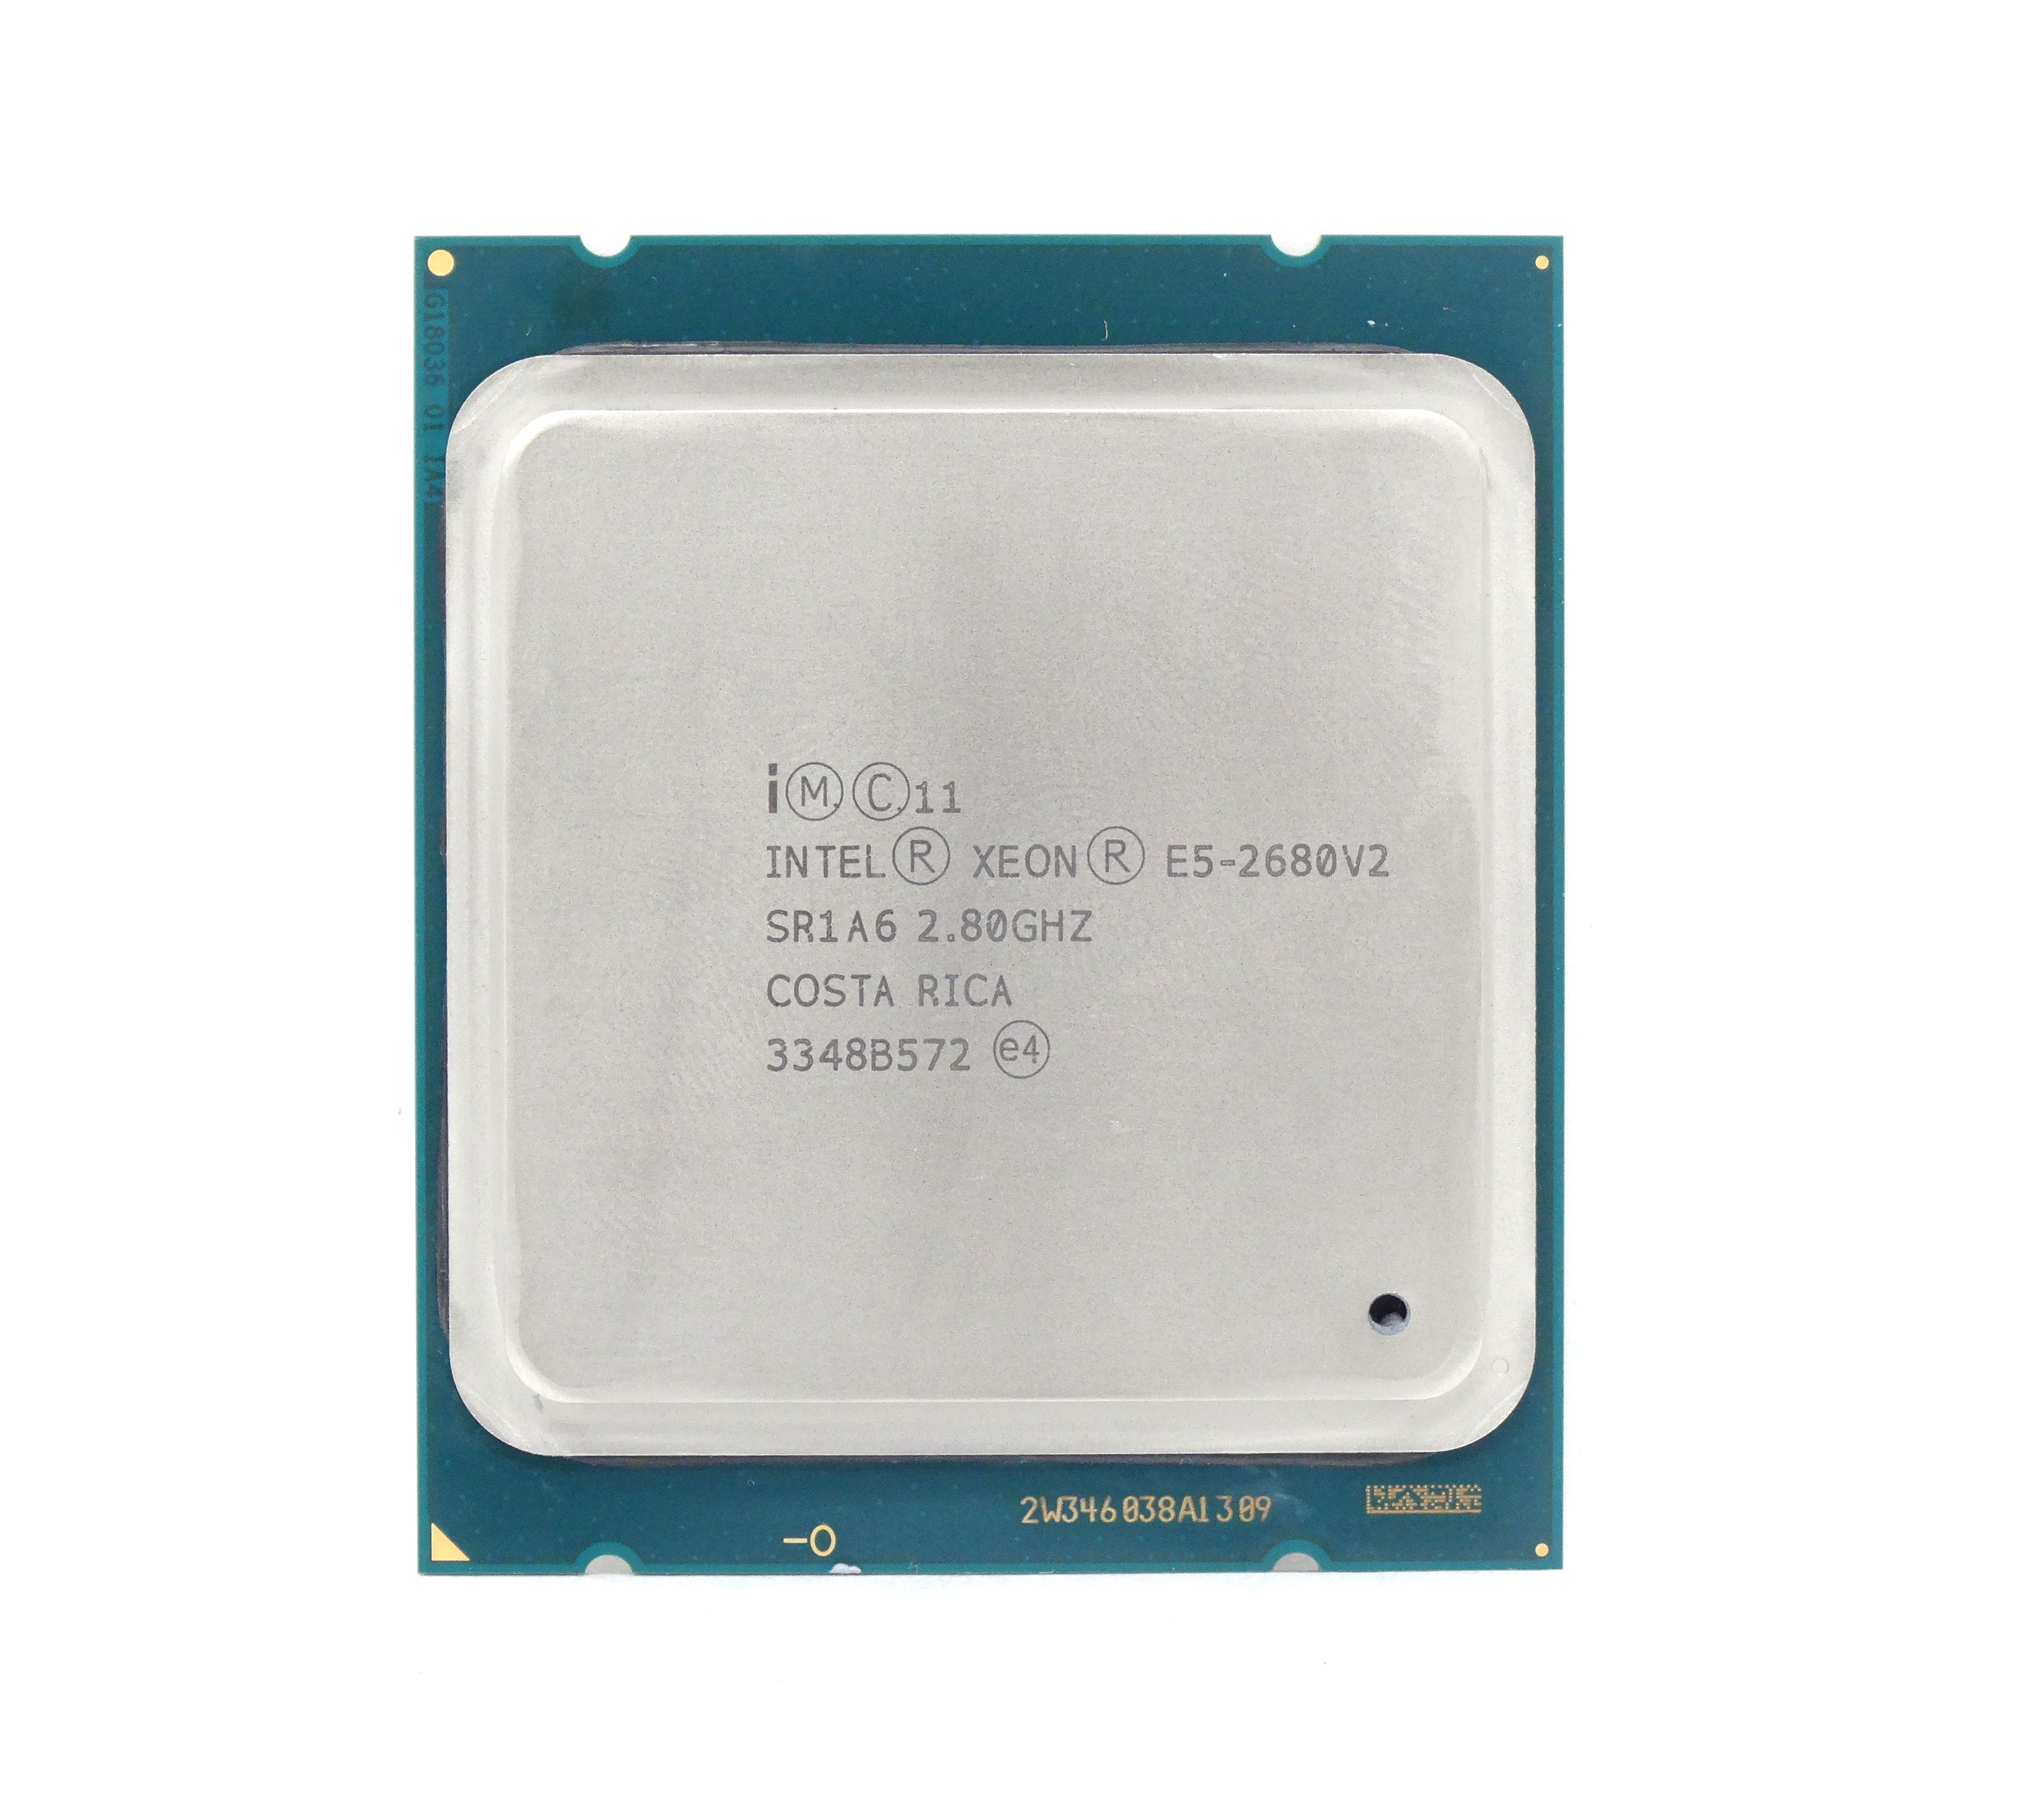 Intel Xeon E5-2680V2 2.8GHz 10 Core 25MB LGA2011 CPU Processor (SR1A6)